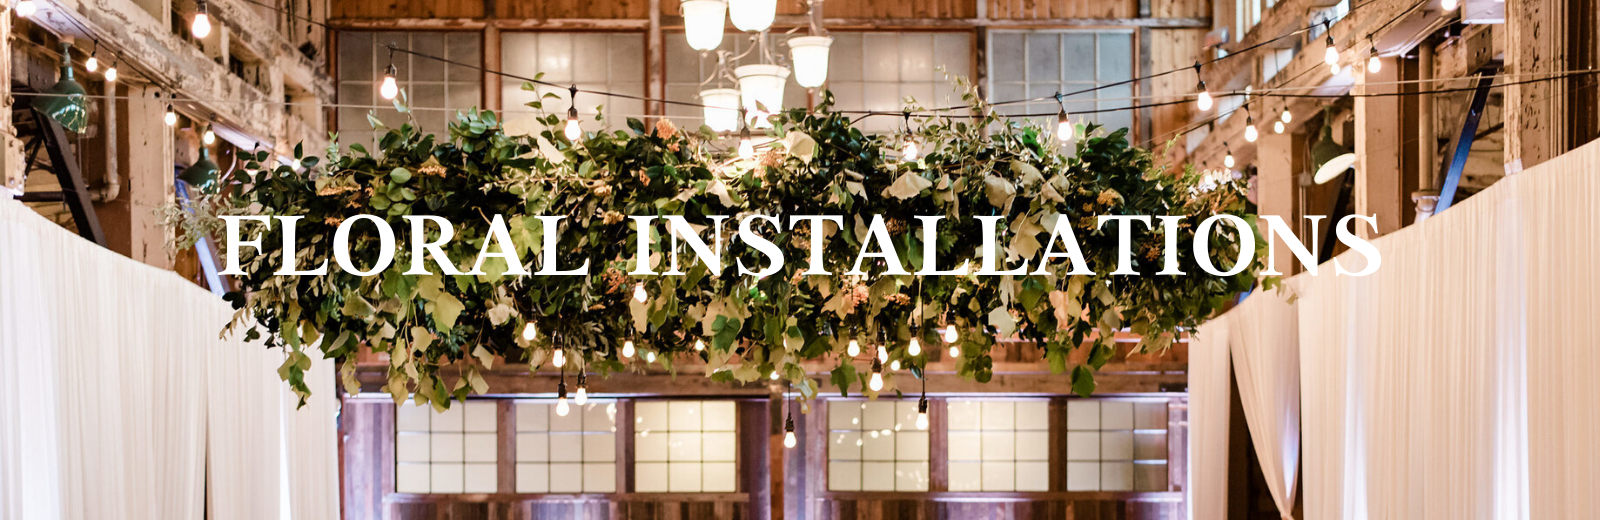 Tobey Nelson will teach a foam free installations floral design workshop with Trill Flora